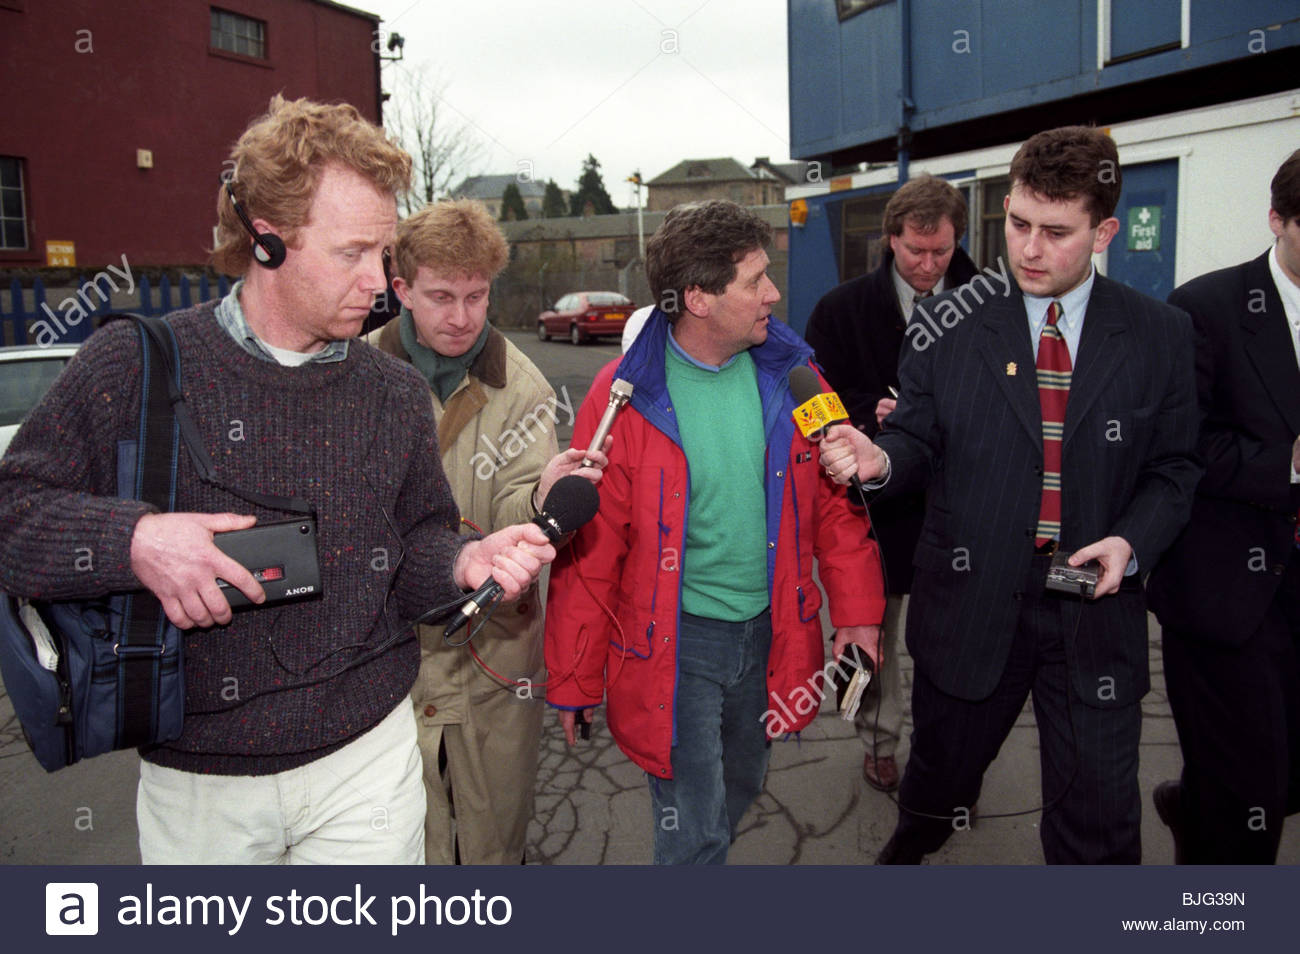 MARCH 1996 FALKIRK John Lambie (red jacket) resigns as Falkirk manager - Stock Image